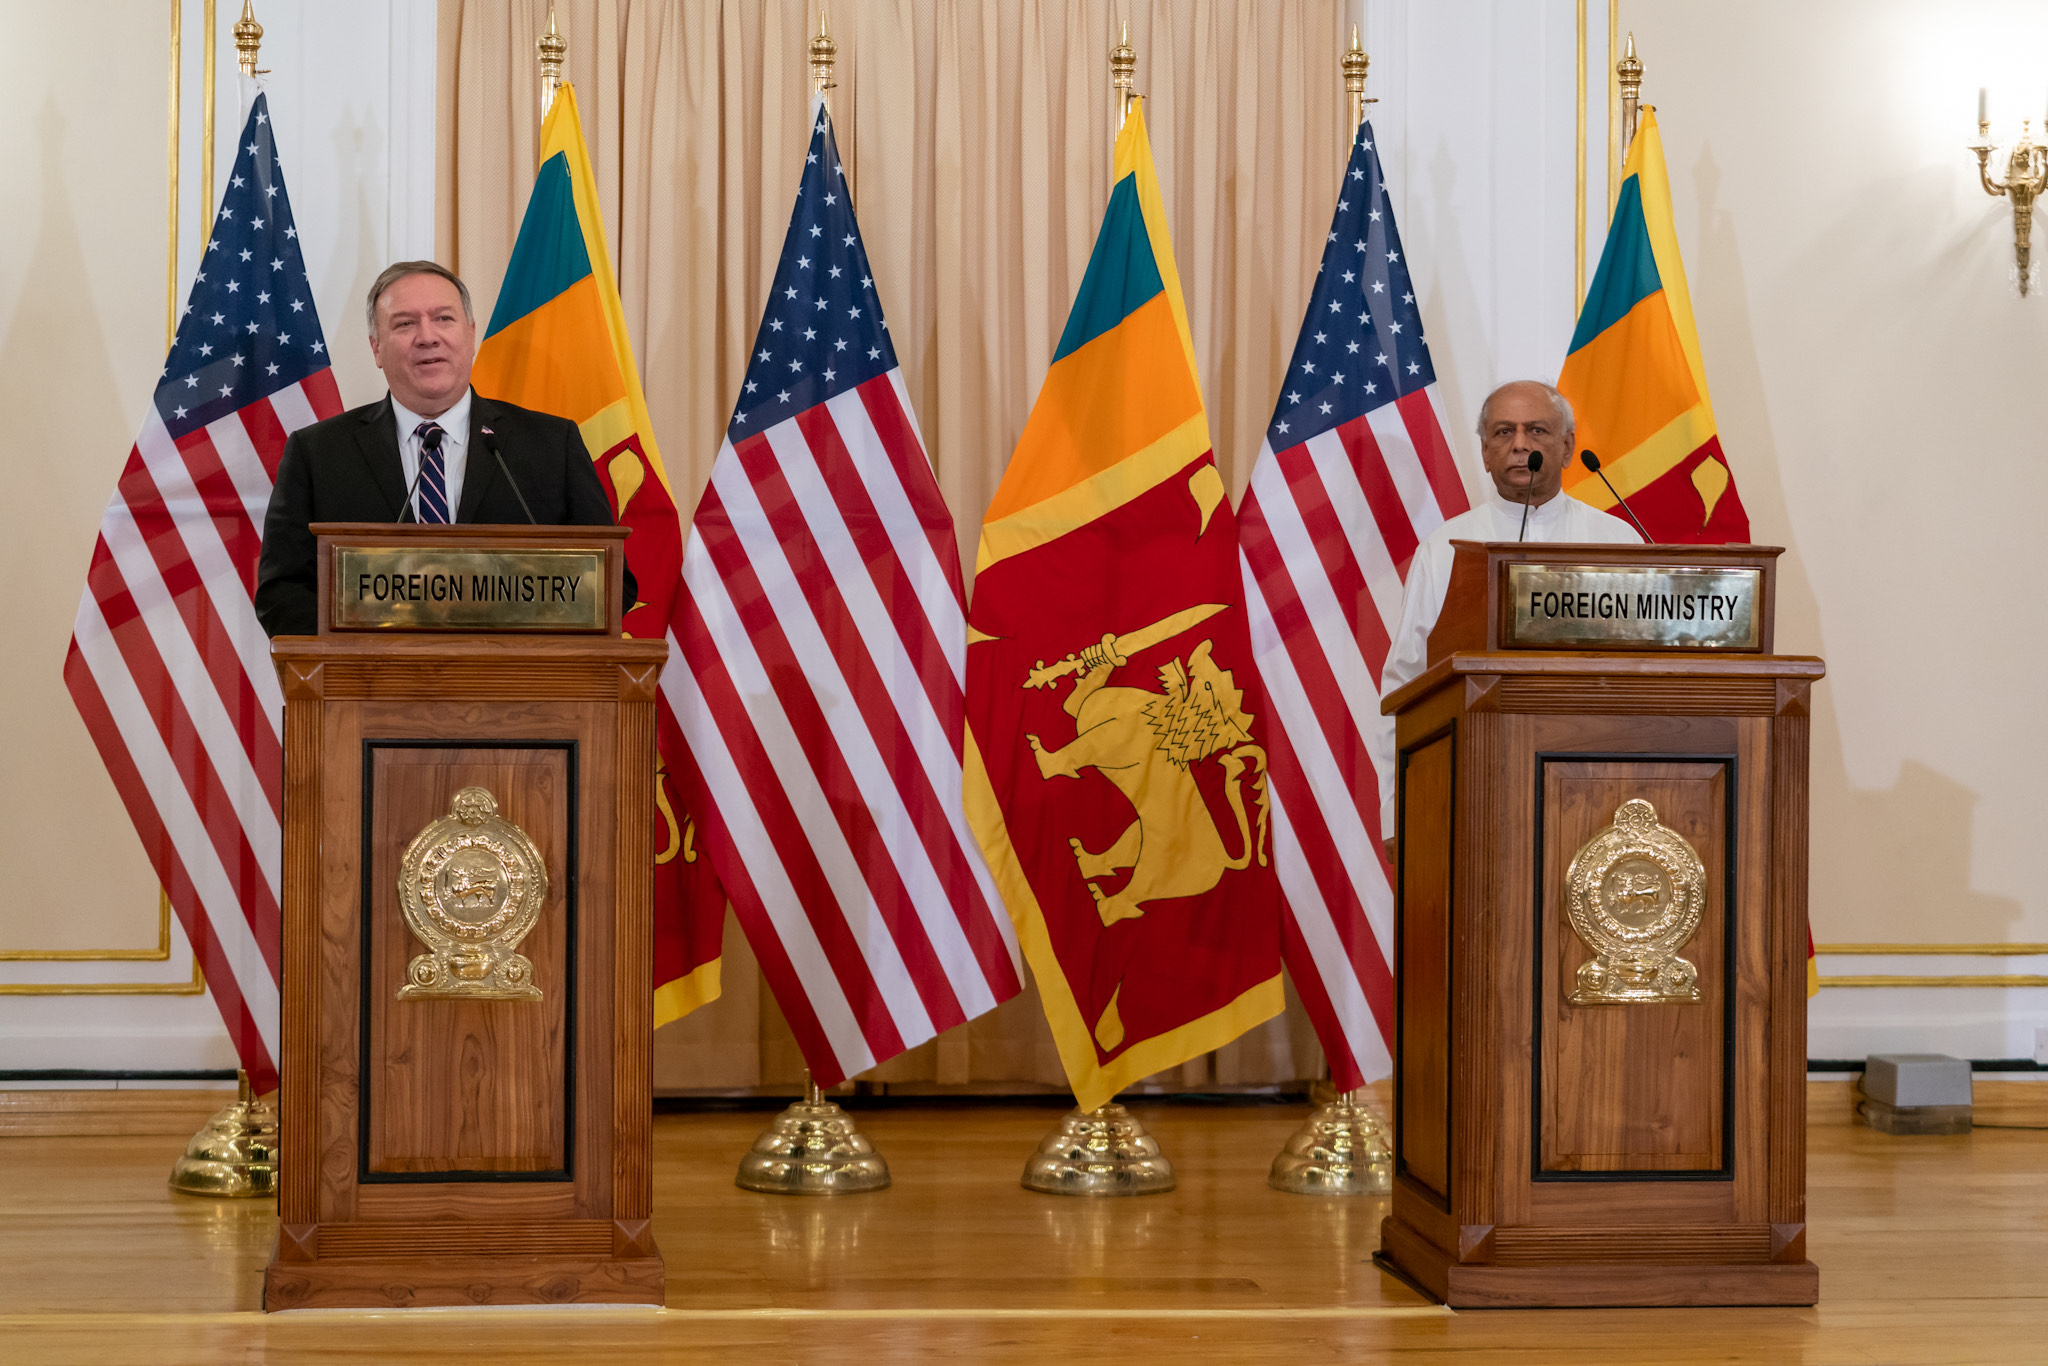 Secretary of State Michael R. Pompeo holds a joint press availability with Sri Lankan Foreign Minister Dinesh Gunawardena in Colombo, Sri Lanka. [State Department Photo by Ron Przysucha/ Public Domain]